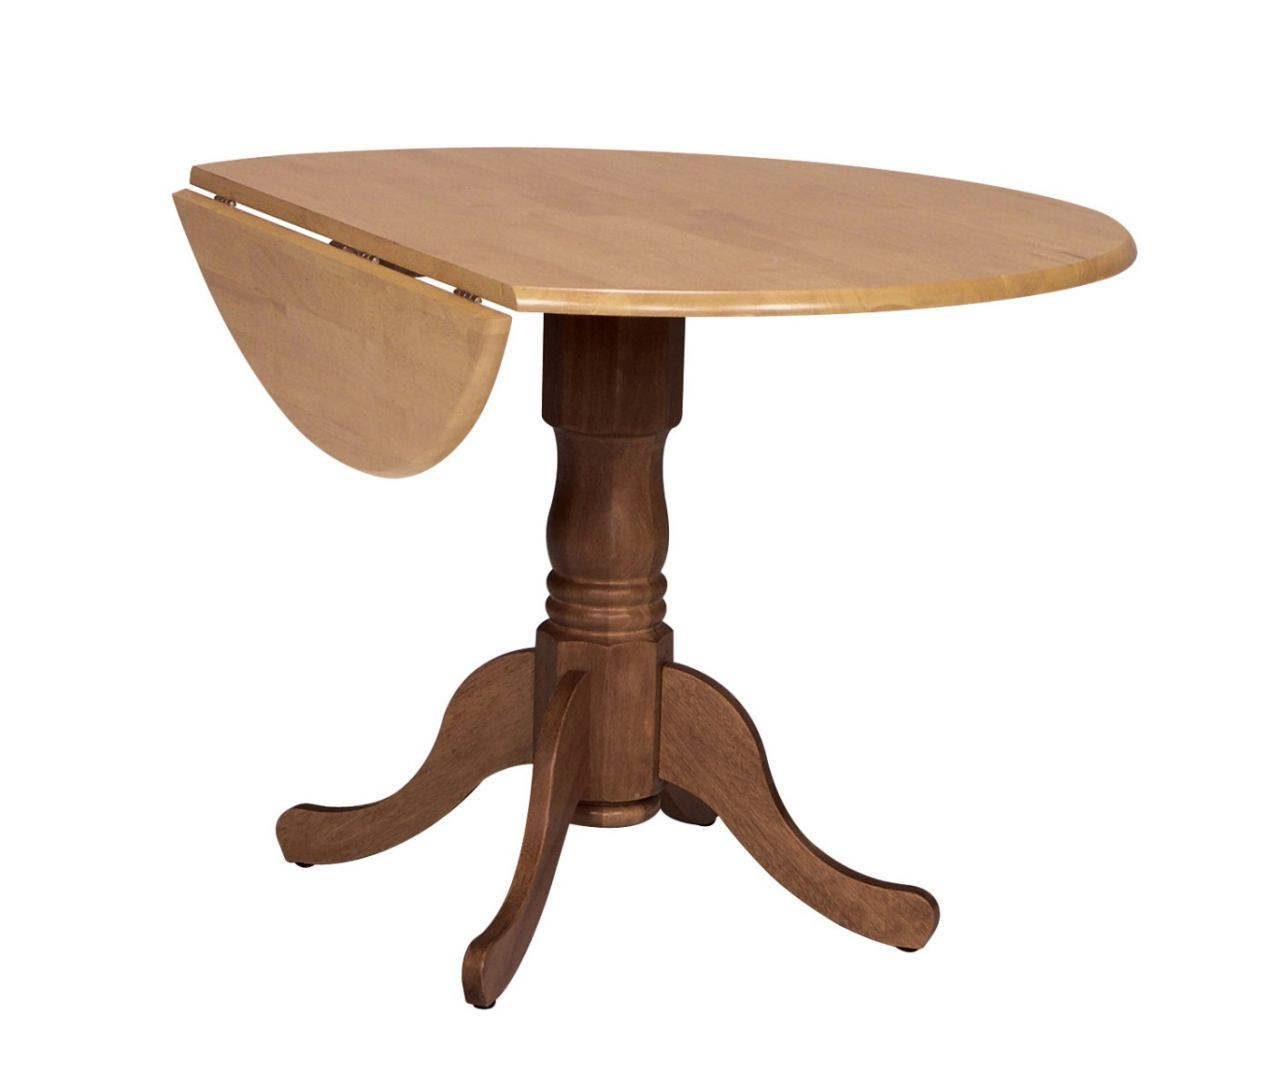 "John Thomas Furniture Dining Essentials 42"" Dropleaf Round Table in Cinnamon/Espresso T58-42DP"